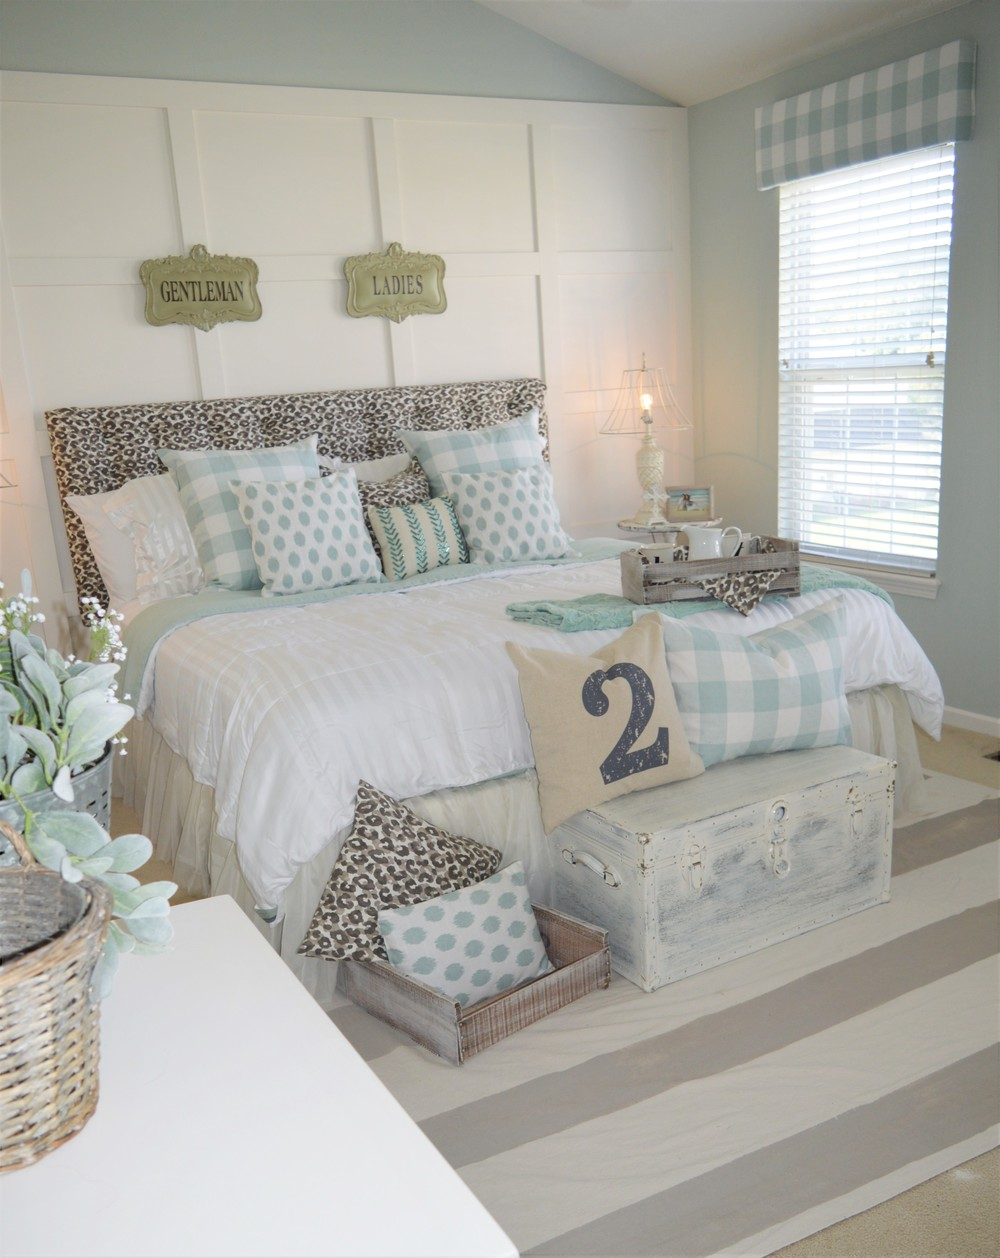 Master Bedroom Makeover After: Modern Farmhouse Bedroom Makeover